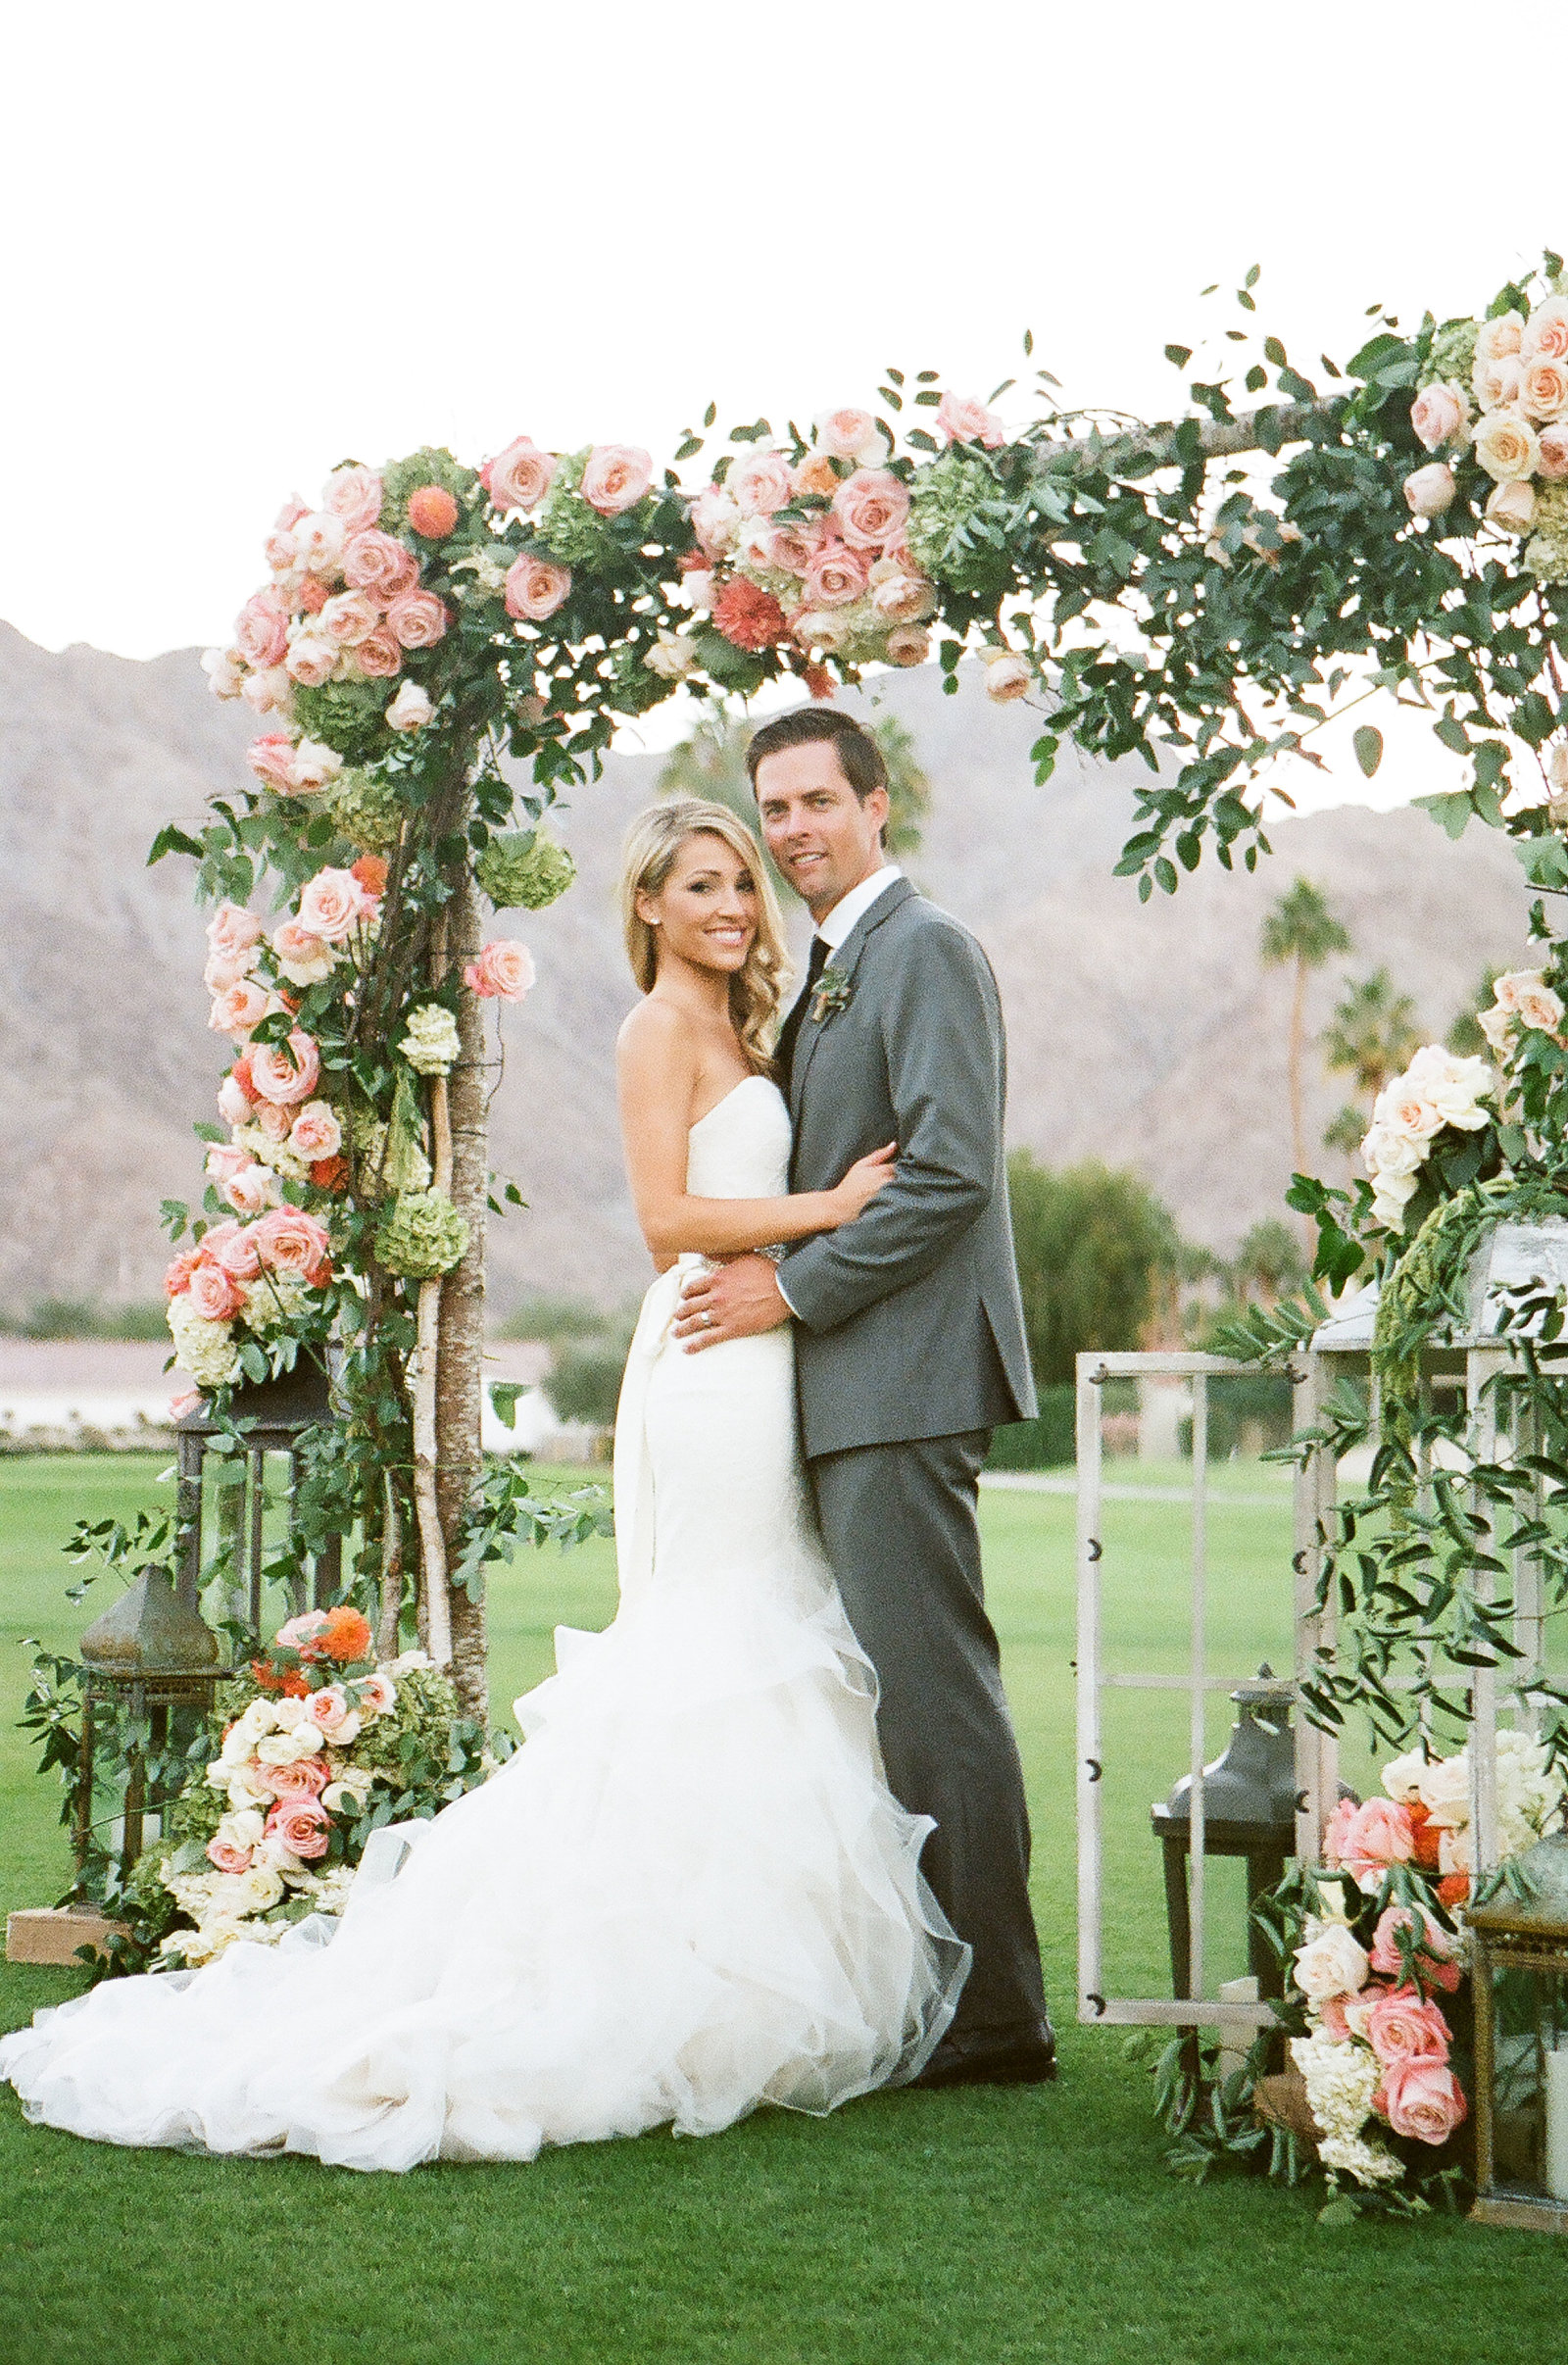 christianne_TAYLOR_christiana_ryan_wedding_resort_photos_photography_la_quinta_malibu_film_at_top_beautiful_couple_model_golf_course_palm_springs_outdoor-172